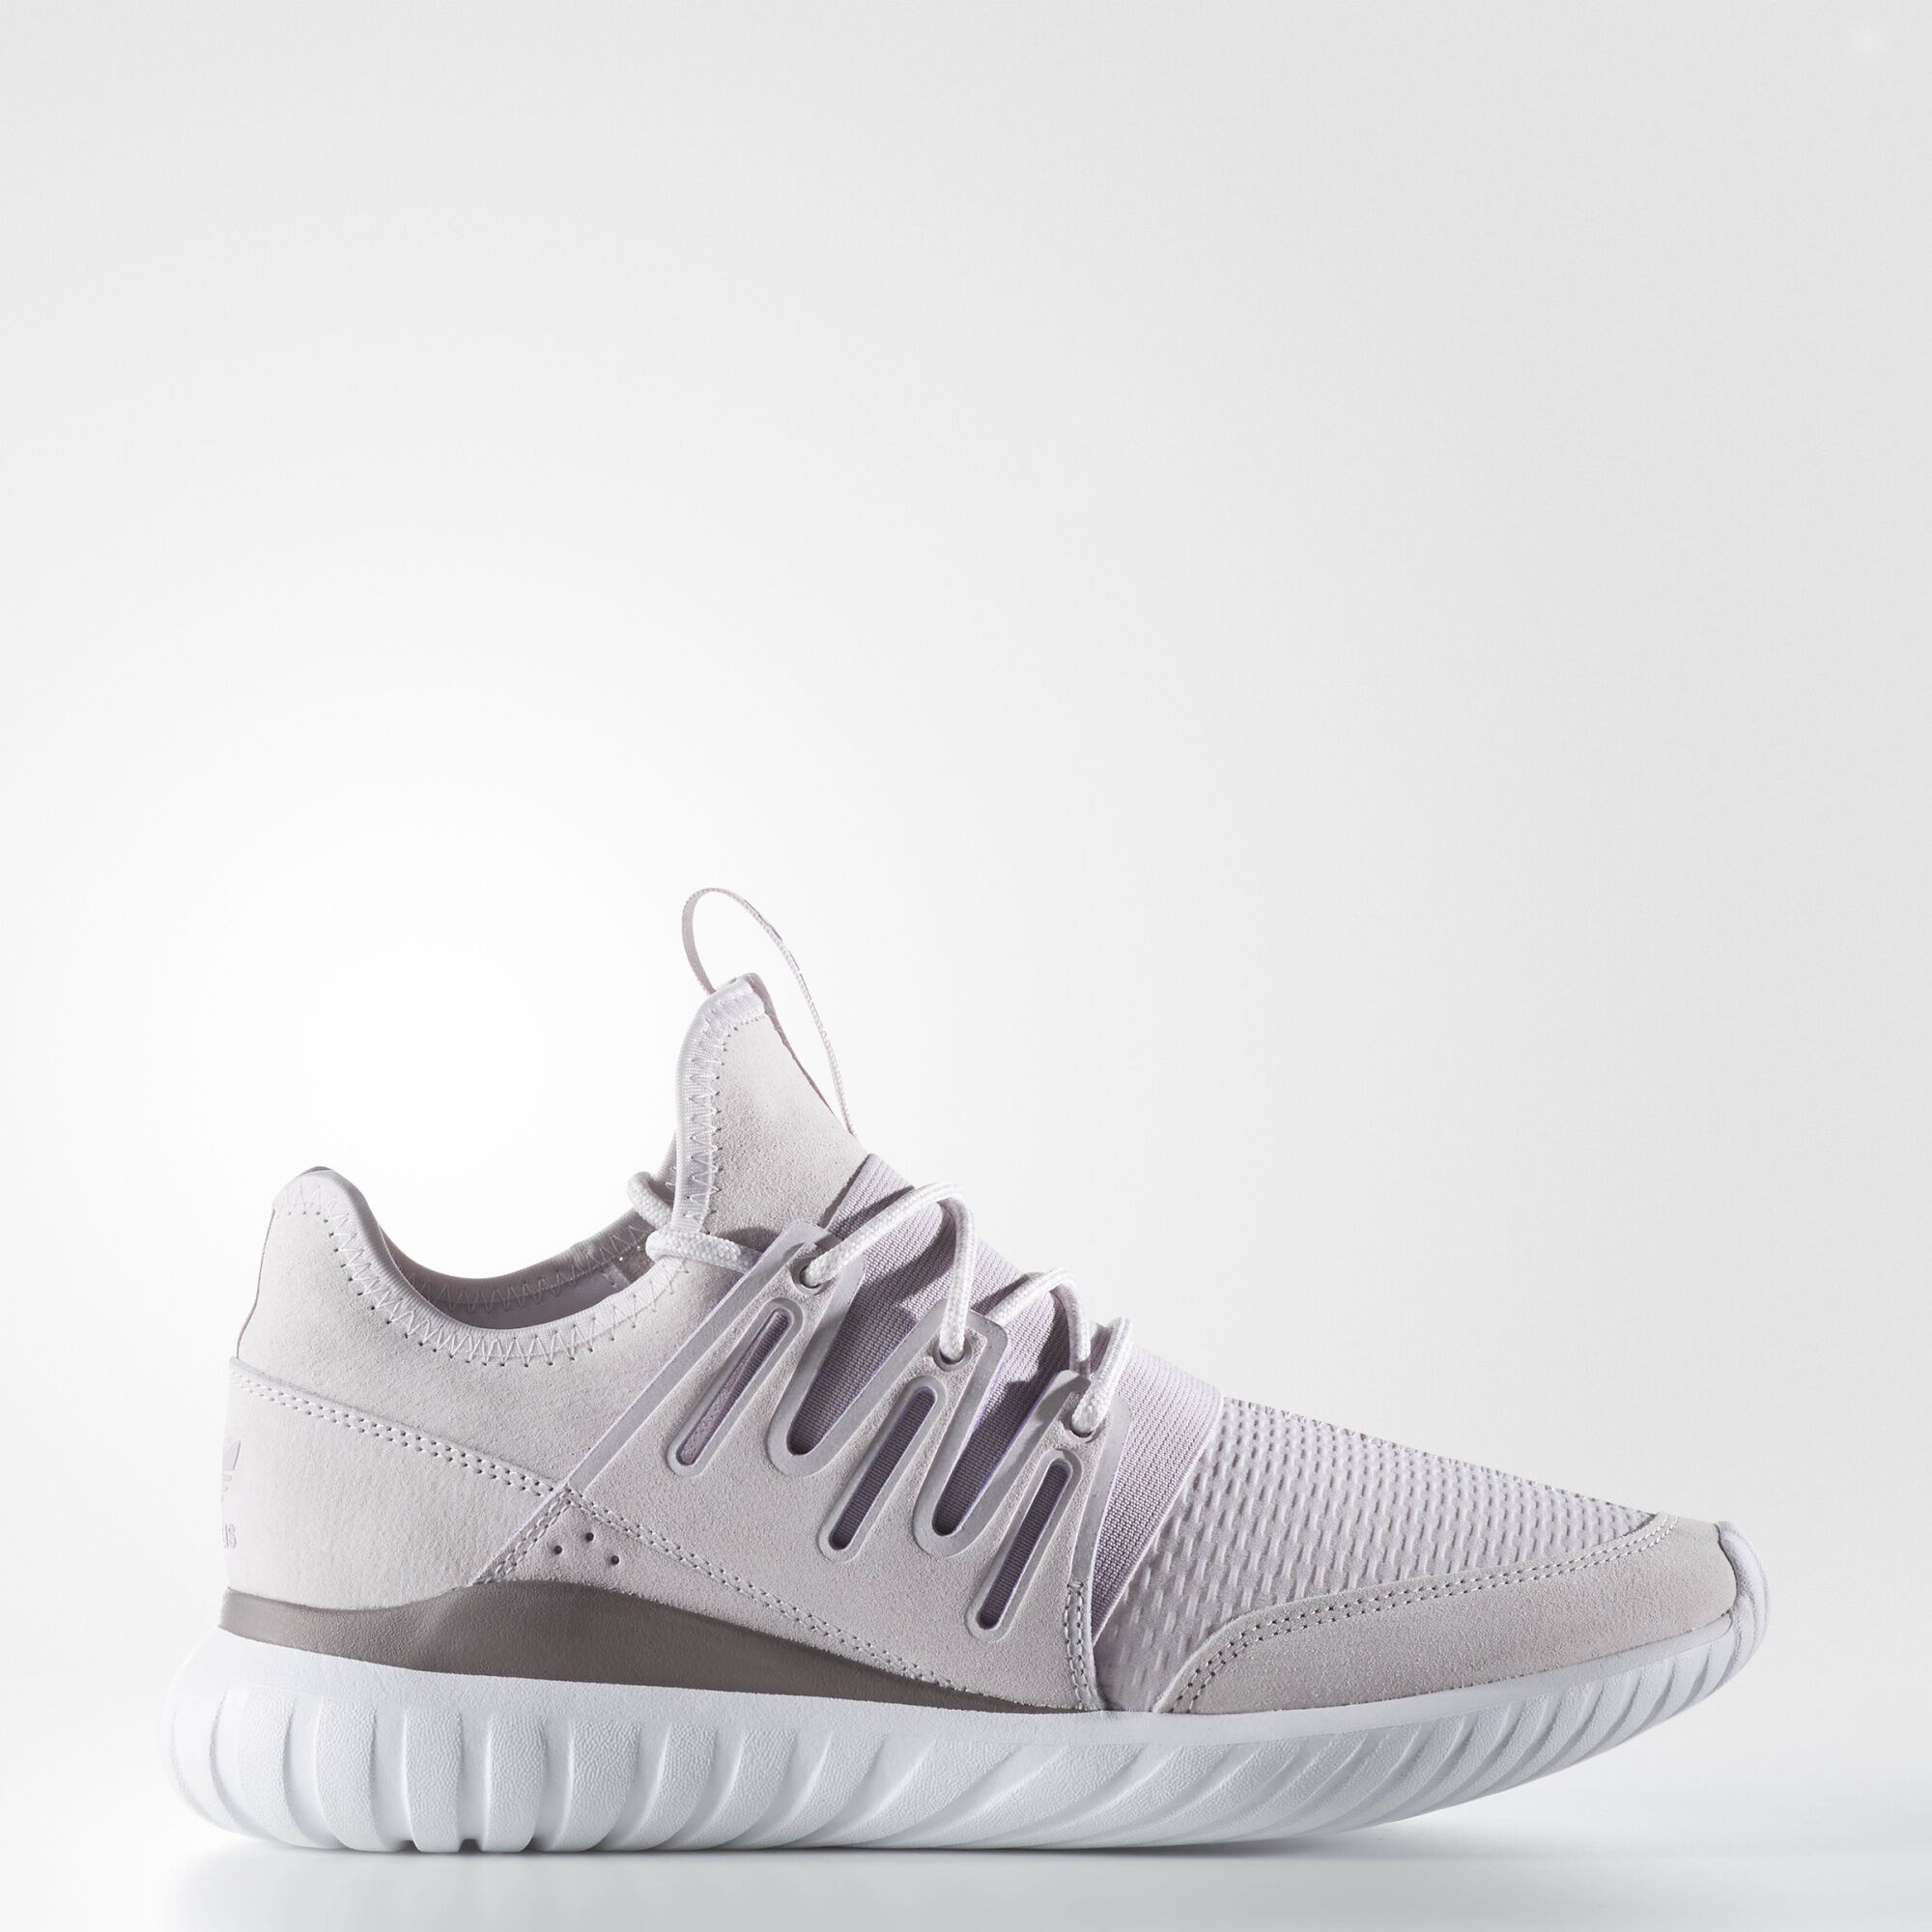 Adidas Originals Tubular Viral Women's Running Shoes White